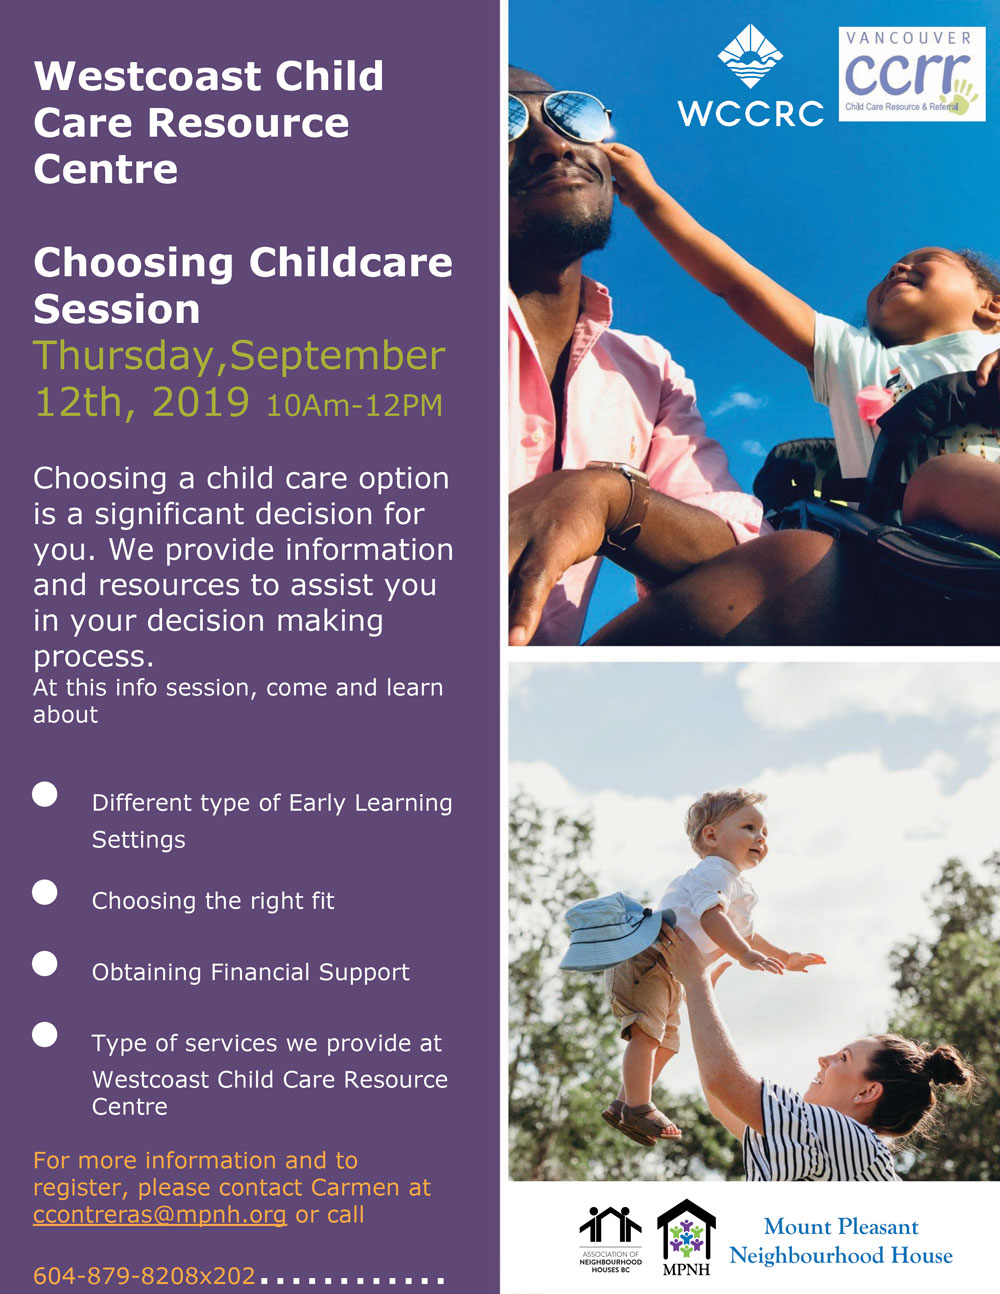 An image of the poster with event details, featuring photos of a dad and child and a mom and child